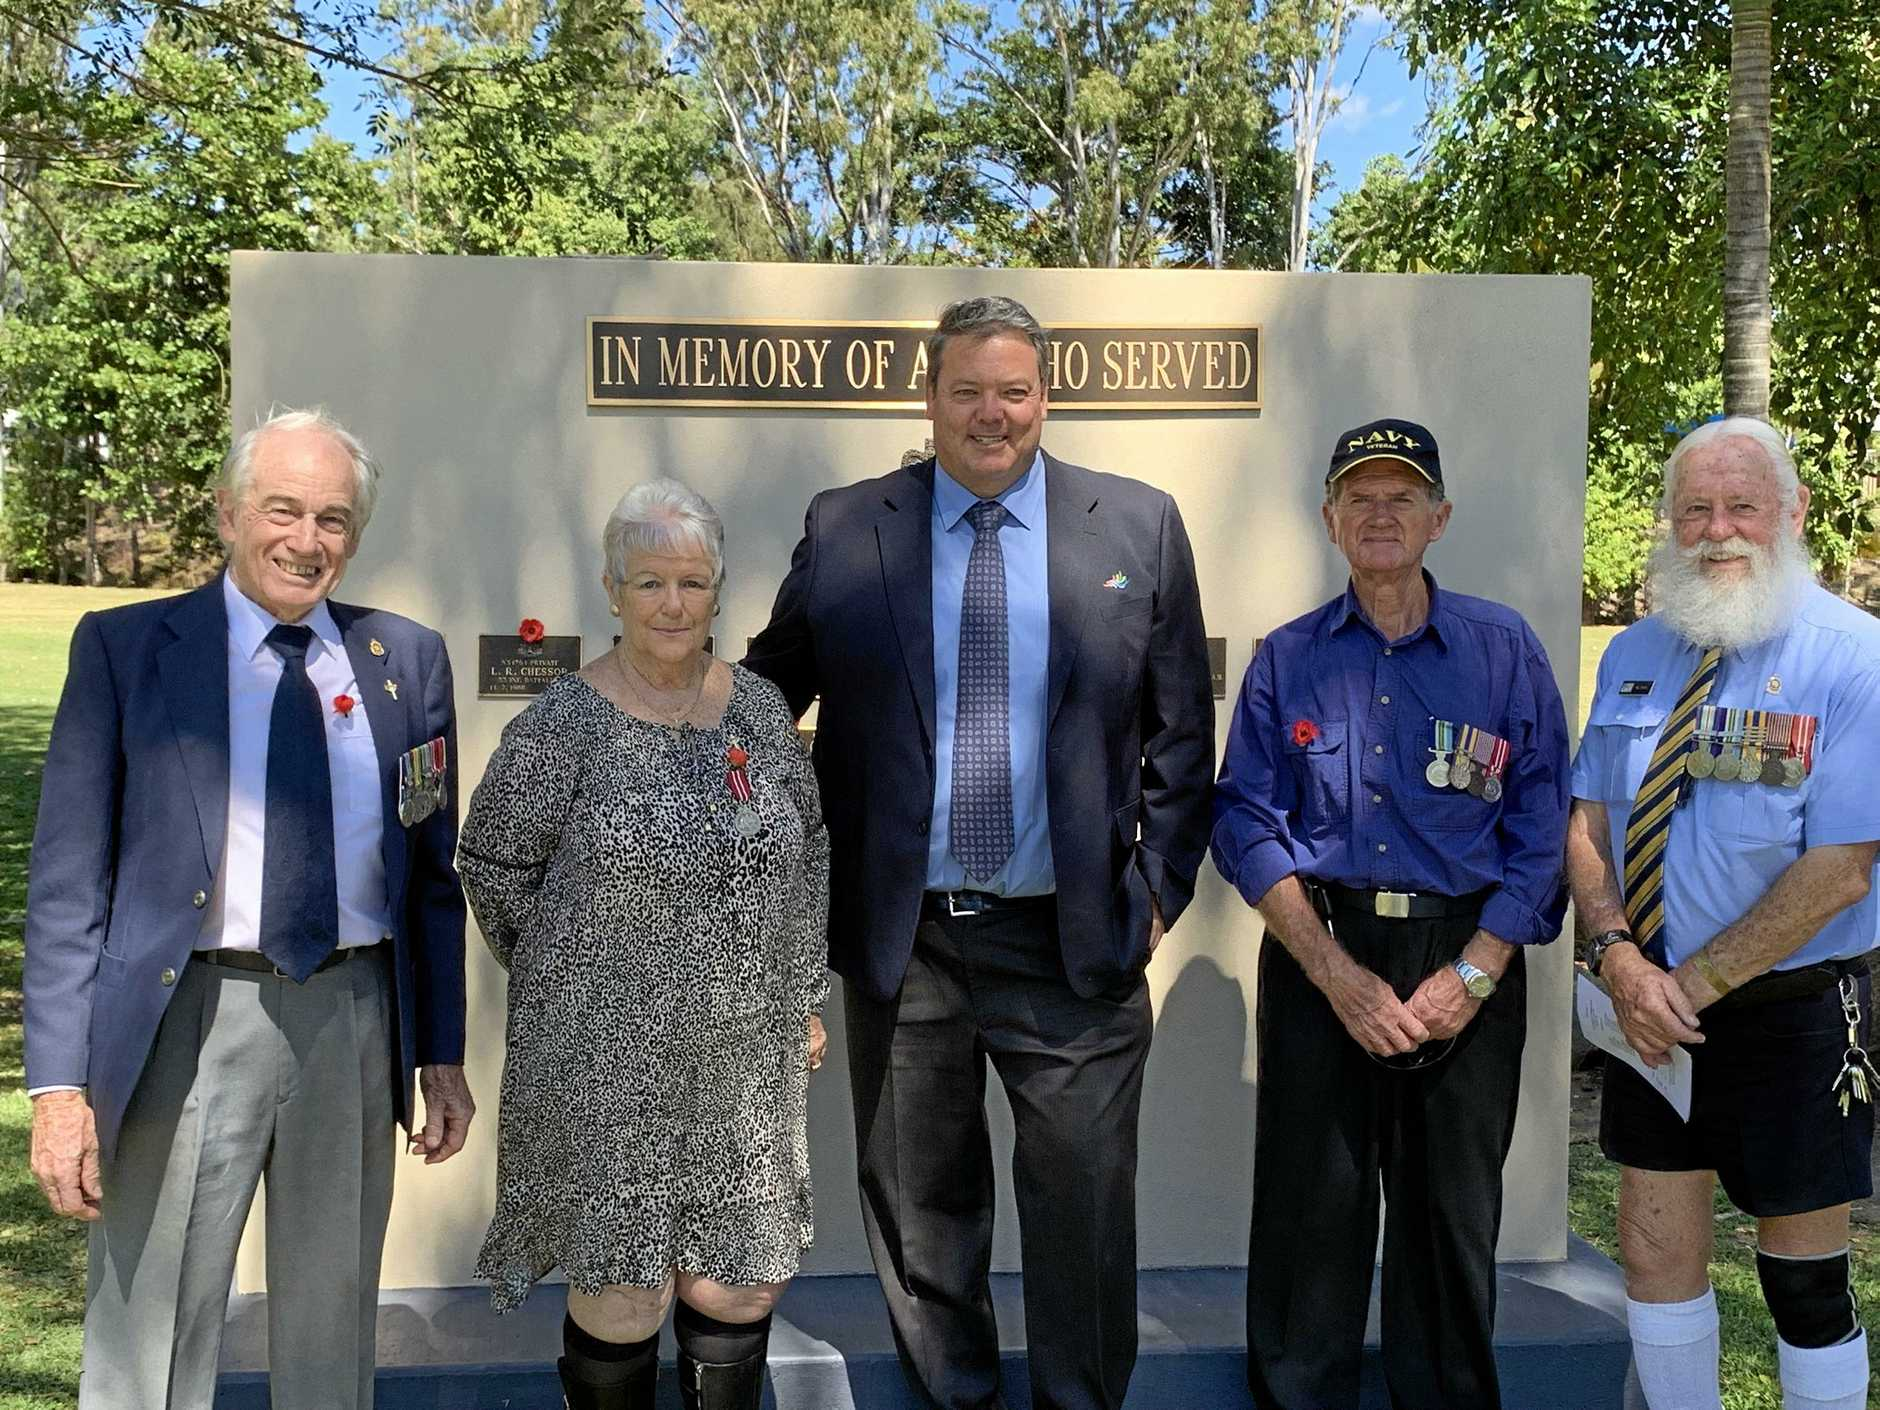 REMEMBERING: Veterans Ken Paterson and Jen Paterson, Whitsunday Regional Council Mayor Andrew Willcox and veterans Peter McKellen and Bill Rose at the Vietnam Veterans Day memorial service at Cannonvale on Friday.